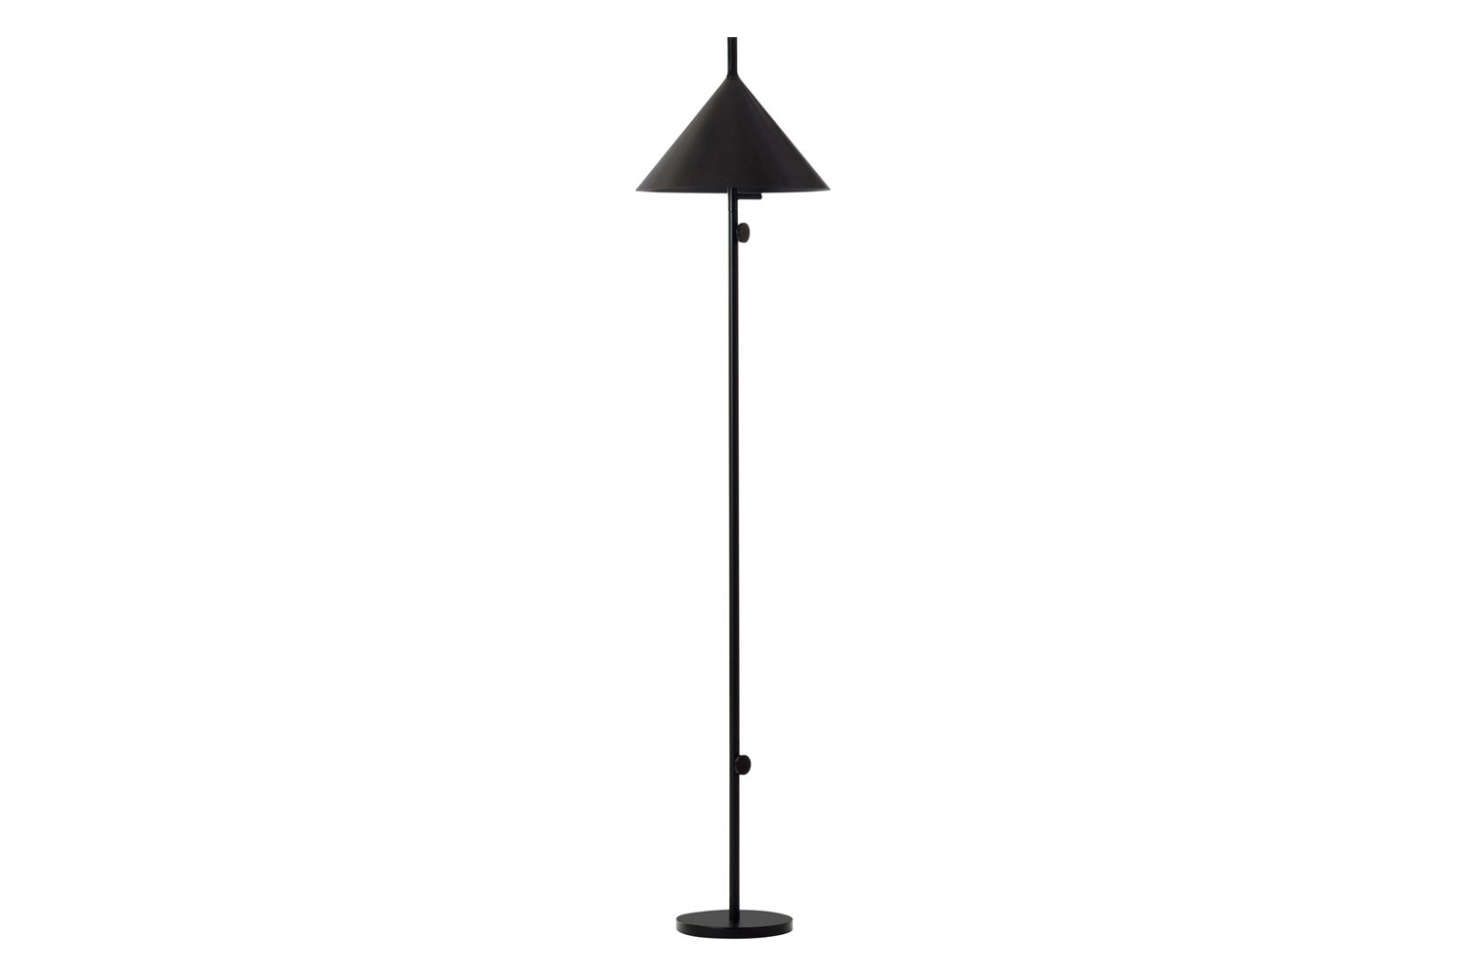 The Wastberg w132 Nendo Floor Lamp is modeled after a desk lamp, designed as a floor model. Made in Sweden from powder coated steel, the lamp is $875 in three colors at Horne.